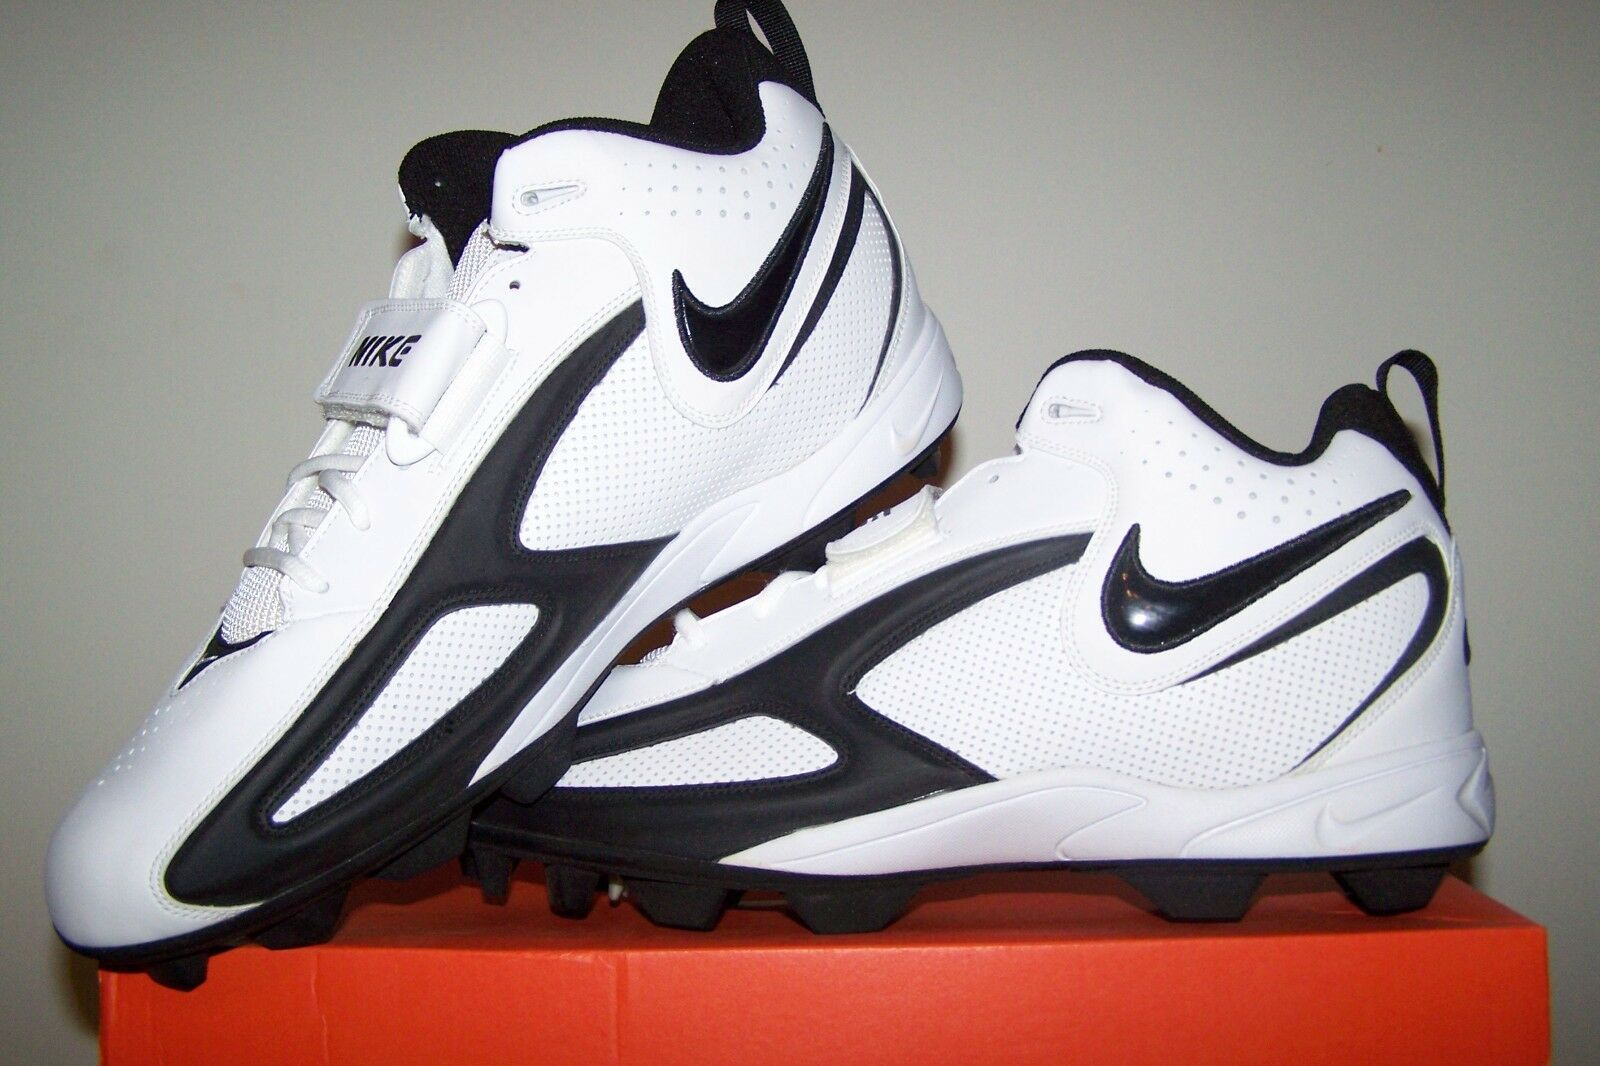 hommes Taille 15 New Blade II Shark blanc Football Cleats with noir Trim